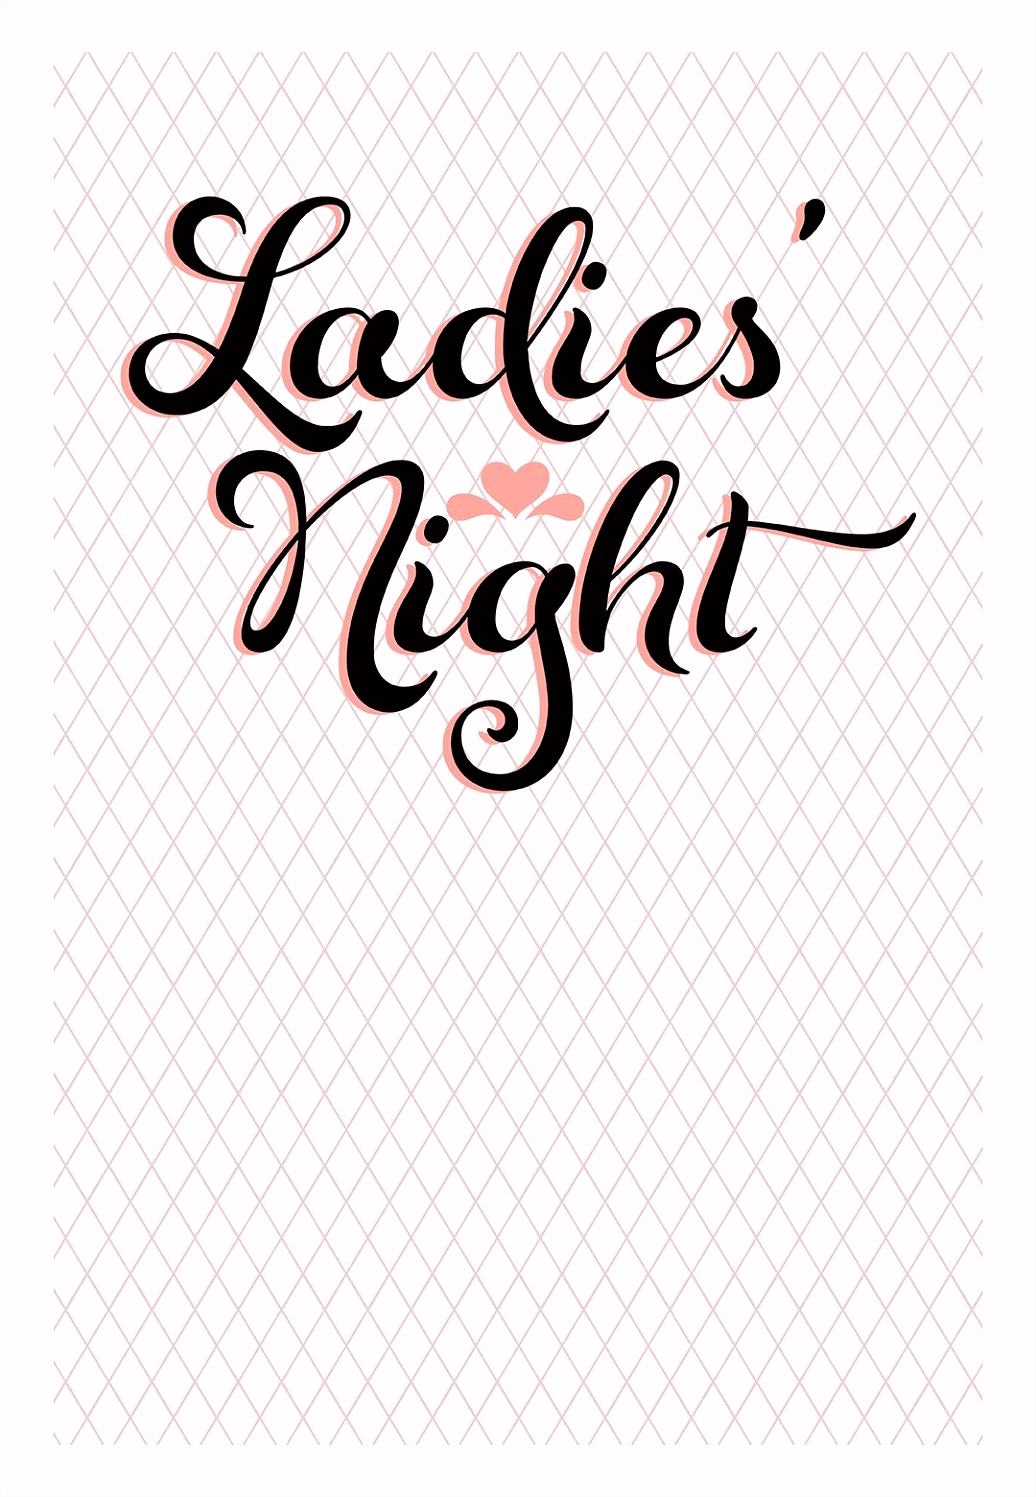 Madelsabend Einladung Vorlage La S Night Bridal Shower Invitation Template Free H4ee98wdk8 O6mg64hky6